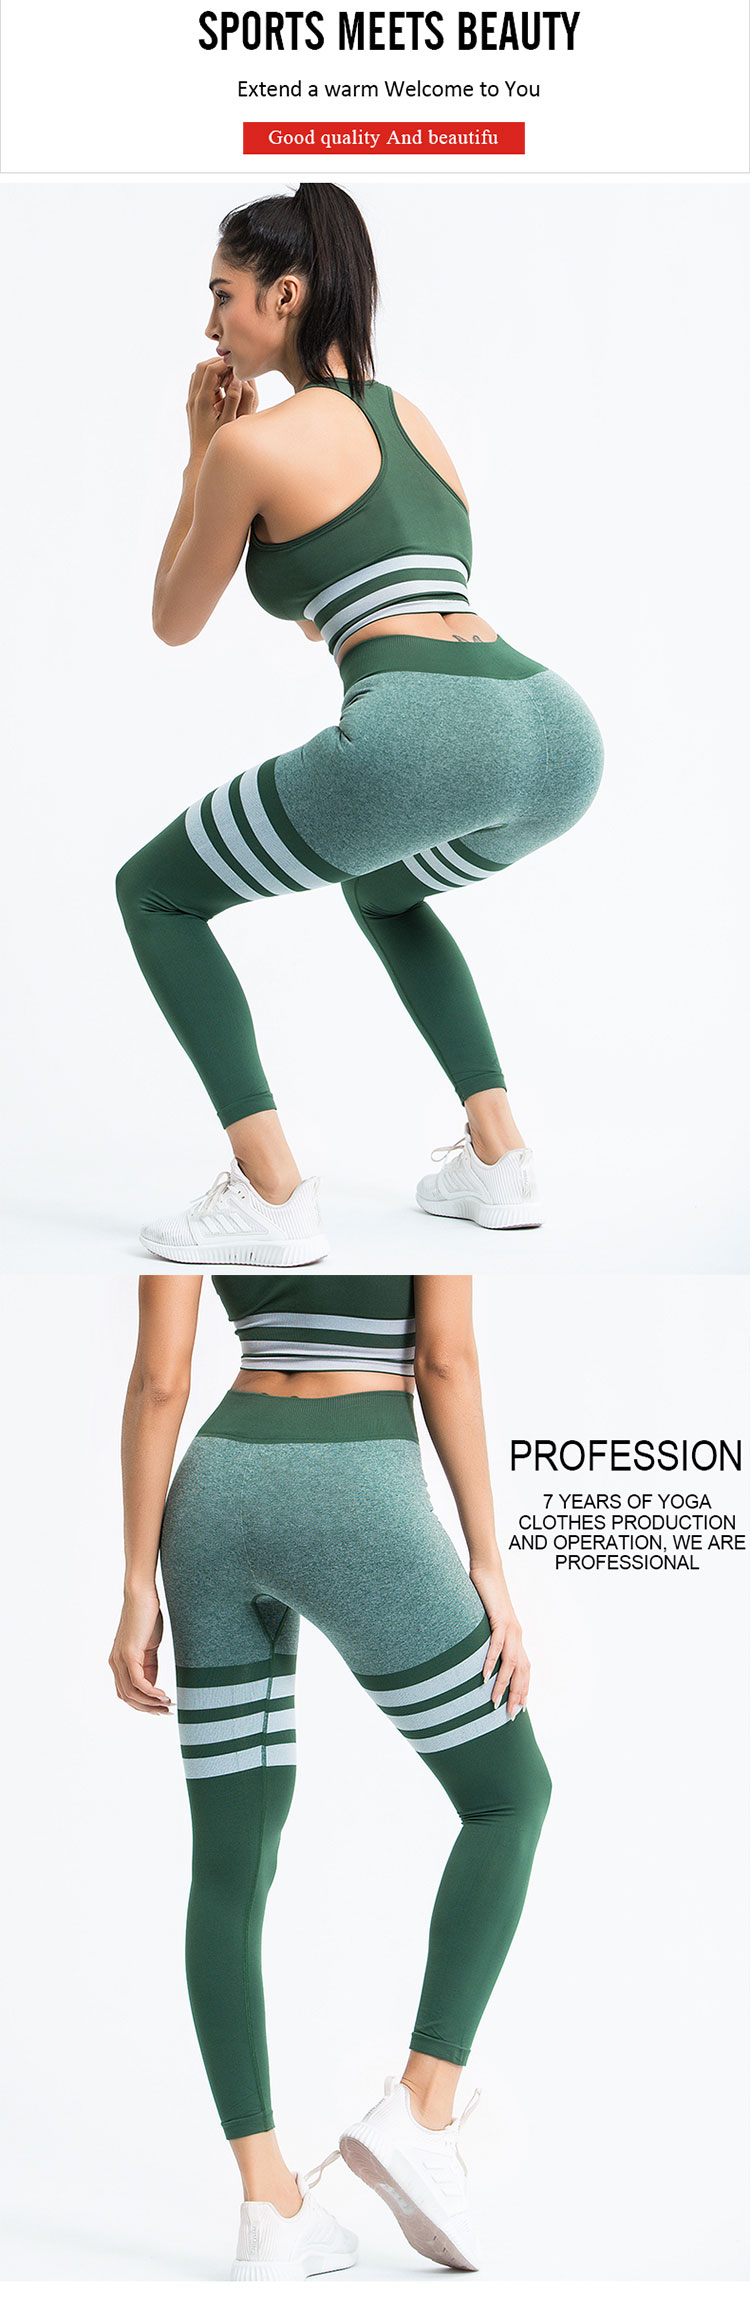 Modern-society-aesthetic-vision-excessively-drained,-yellow-athletic-leggings-become-mainstream-aesthetic